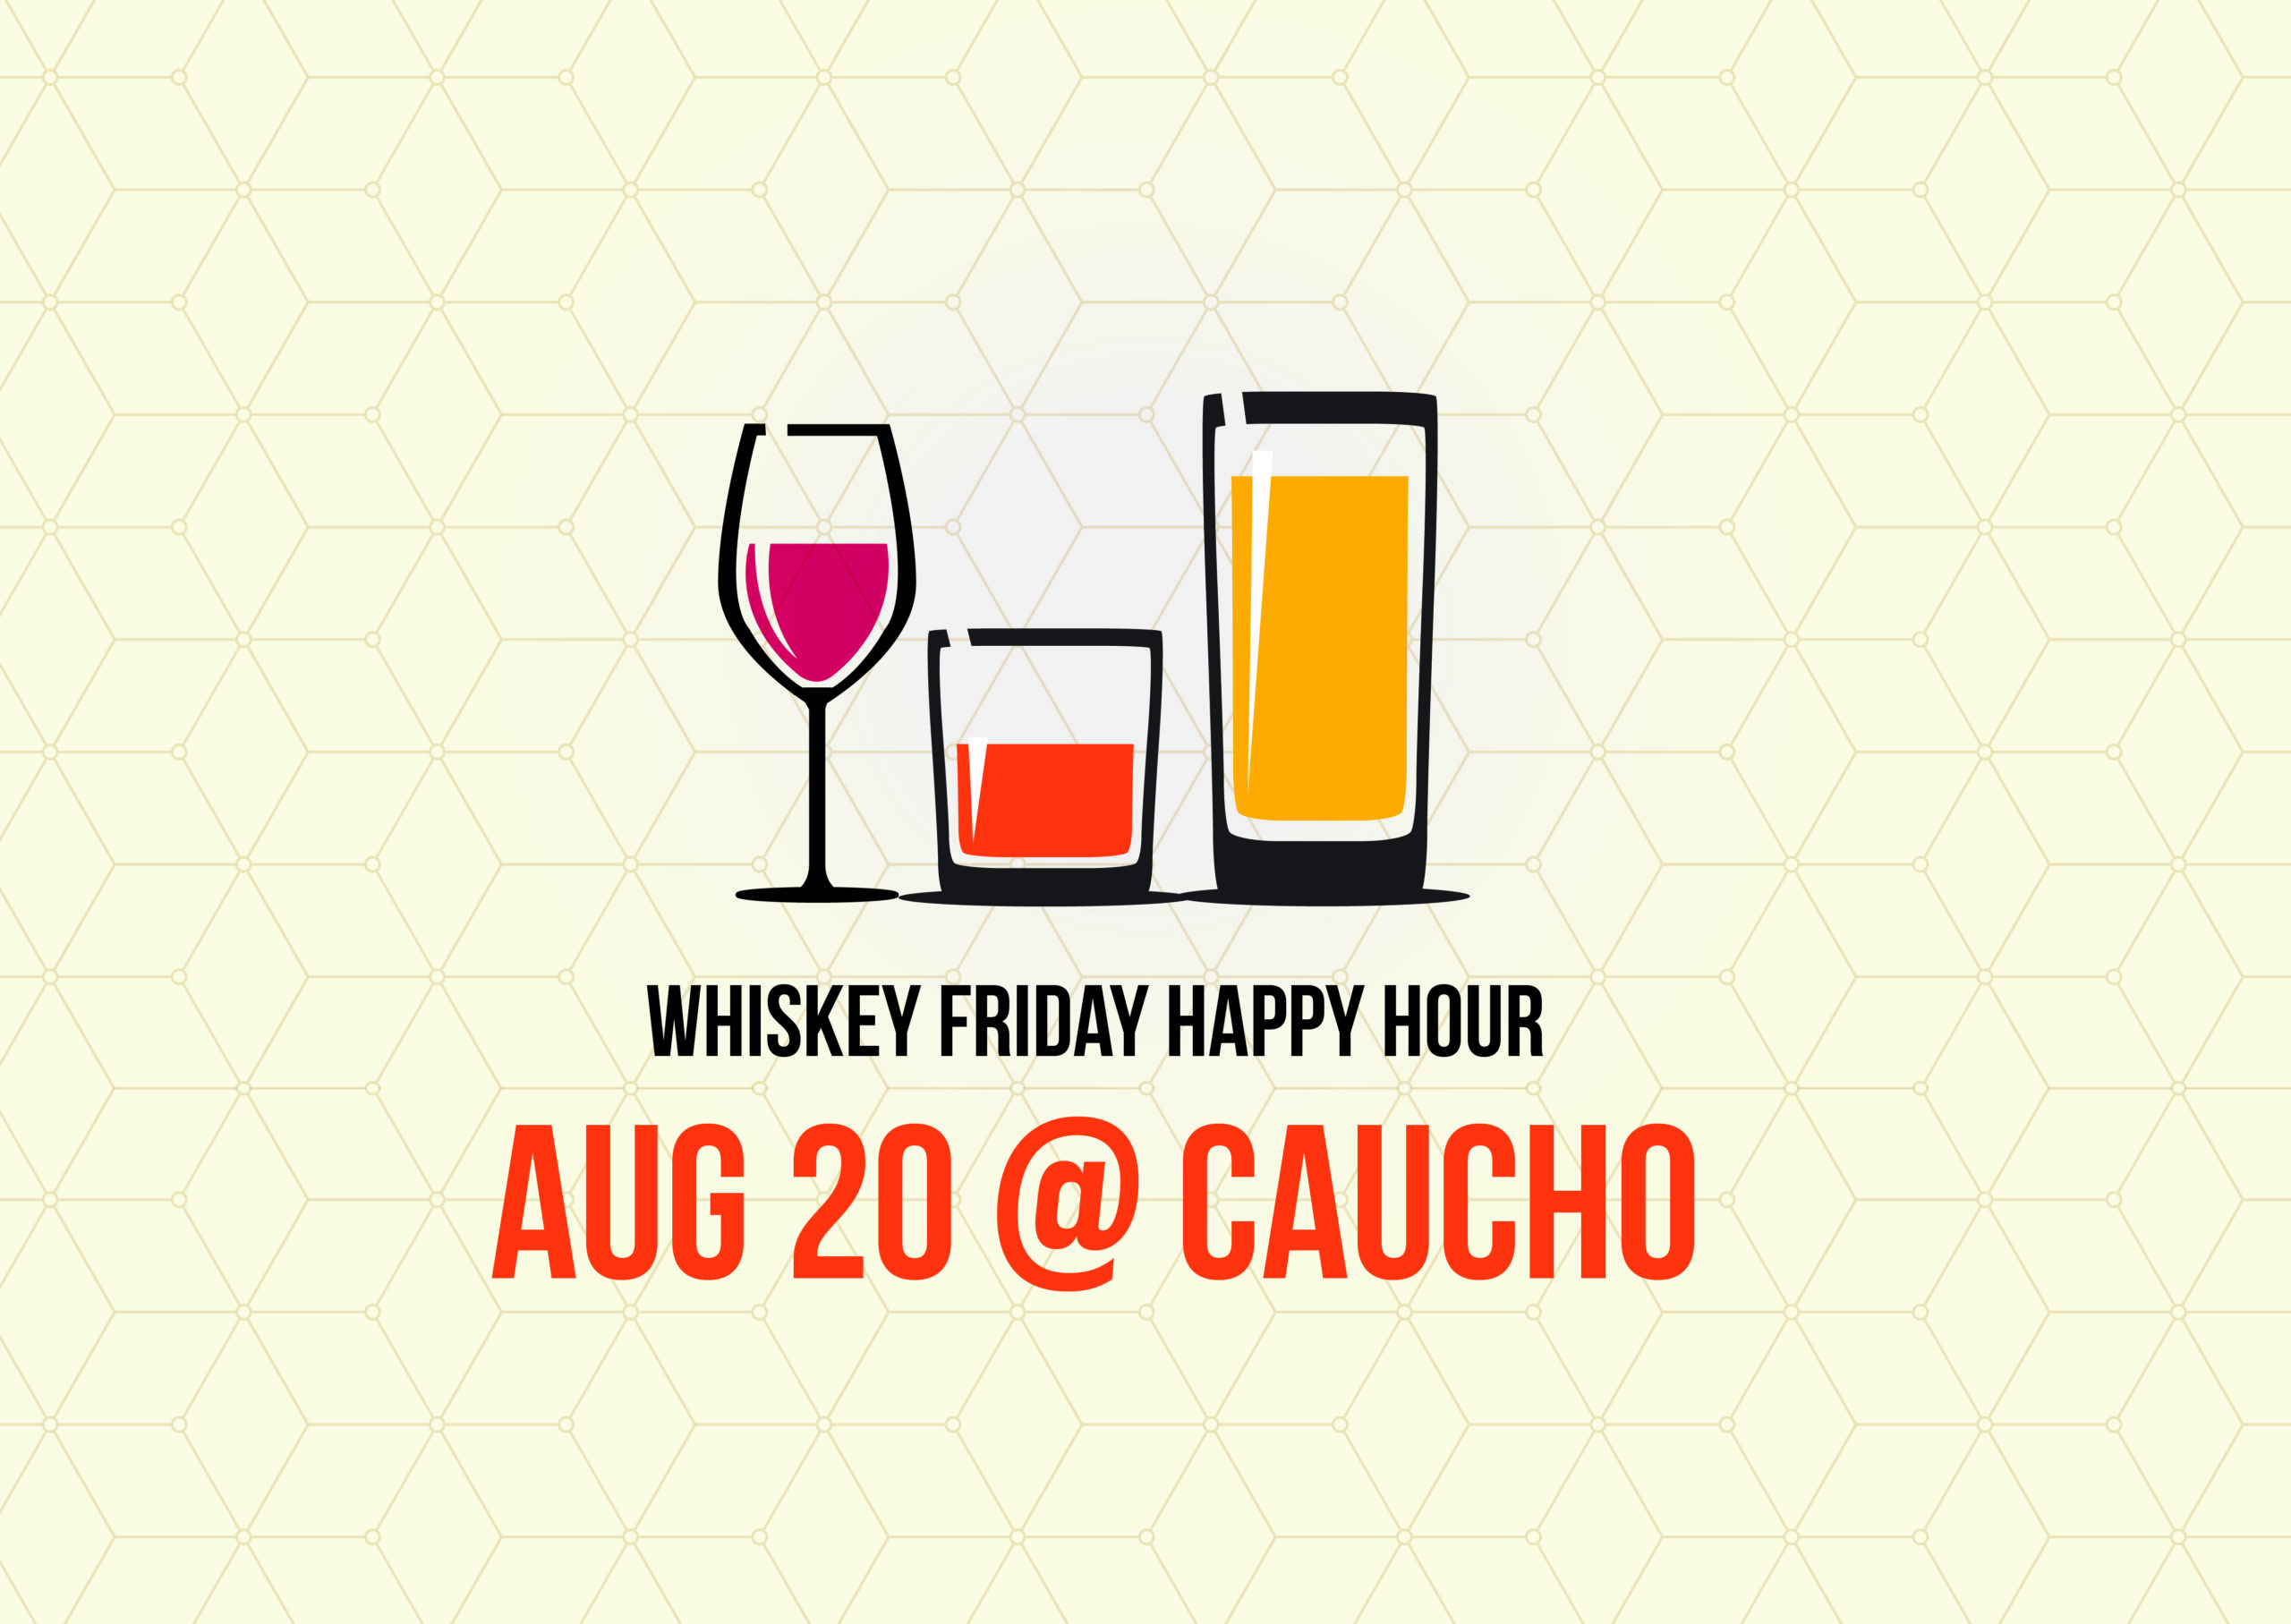 Whiskey Friday at Caucho on August 20, 2021